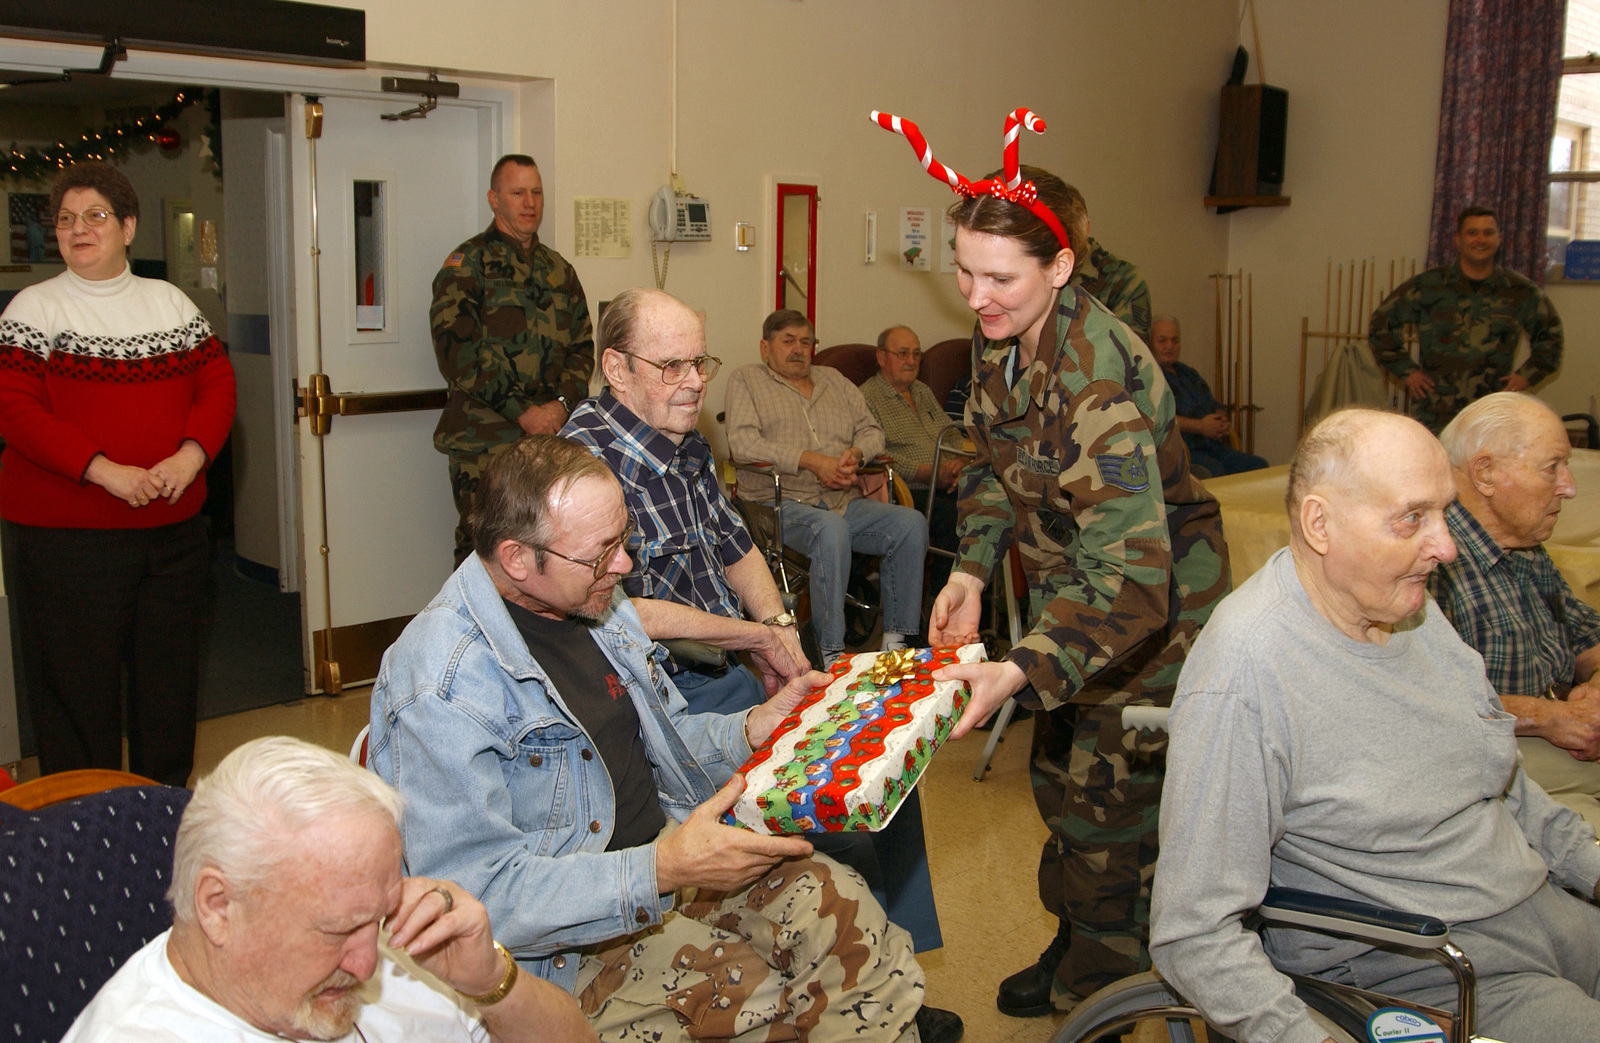 STAFF SGT. Melissa D. Rasmusson, from the 119th Maintenance Operations Flight, North Dakota Air National Guard (NDANG), based at Hector International Airport (IAP), Fargo, N.D., hands a Christmas present to a resident of the North Dakota Veterans Home in Lisbon, N.D. Dec. 21, 2004.  The residents of the nursing home look forward to recieving gifts from NDANG members each holiday season. (USAF PHOTO by SMSGT. David H. Lipp) (Released)